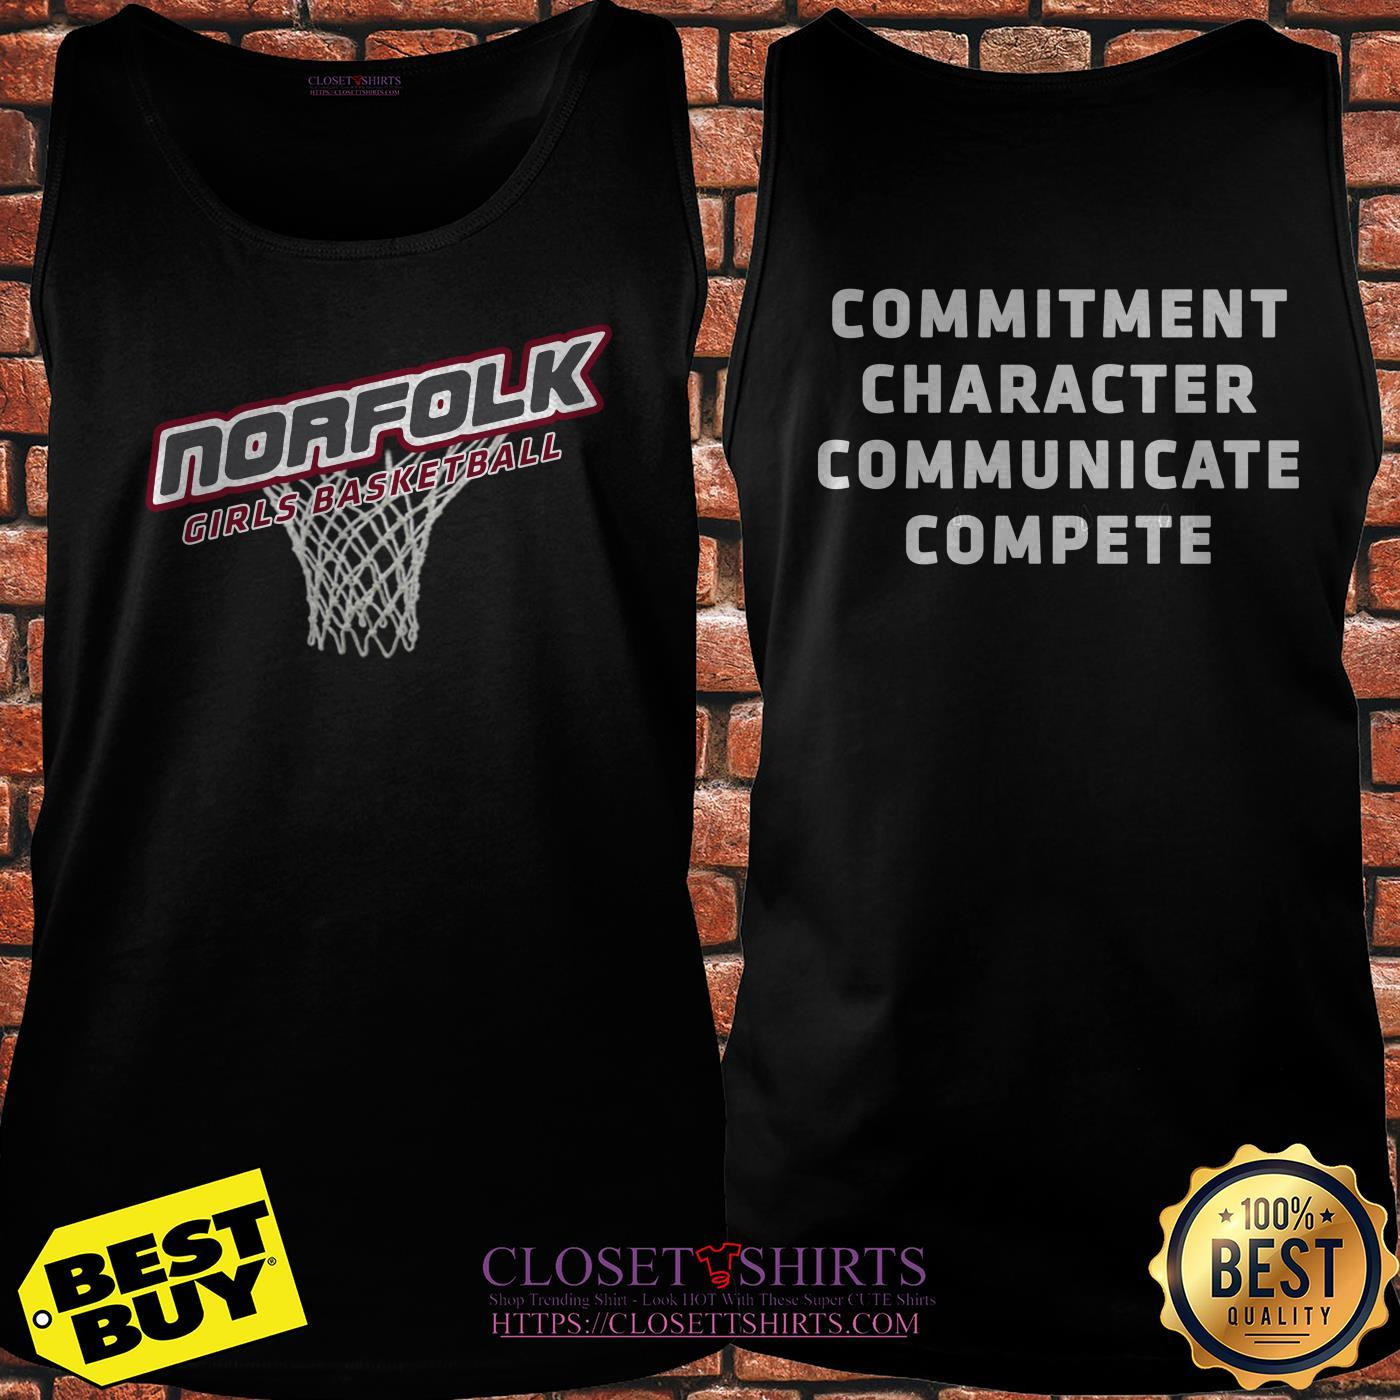 Norfolk Girls Basketball Commitment Character Communicate Compete tank top